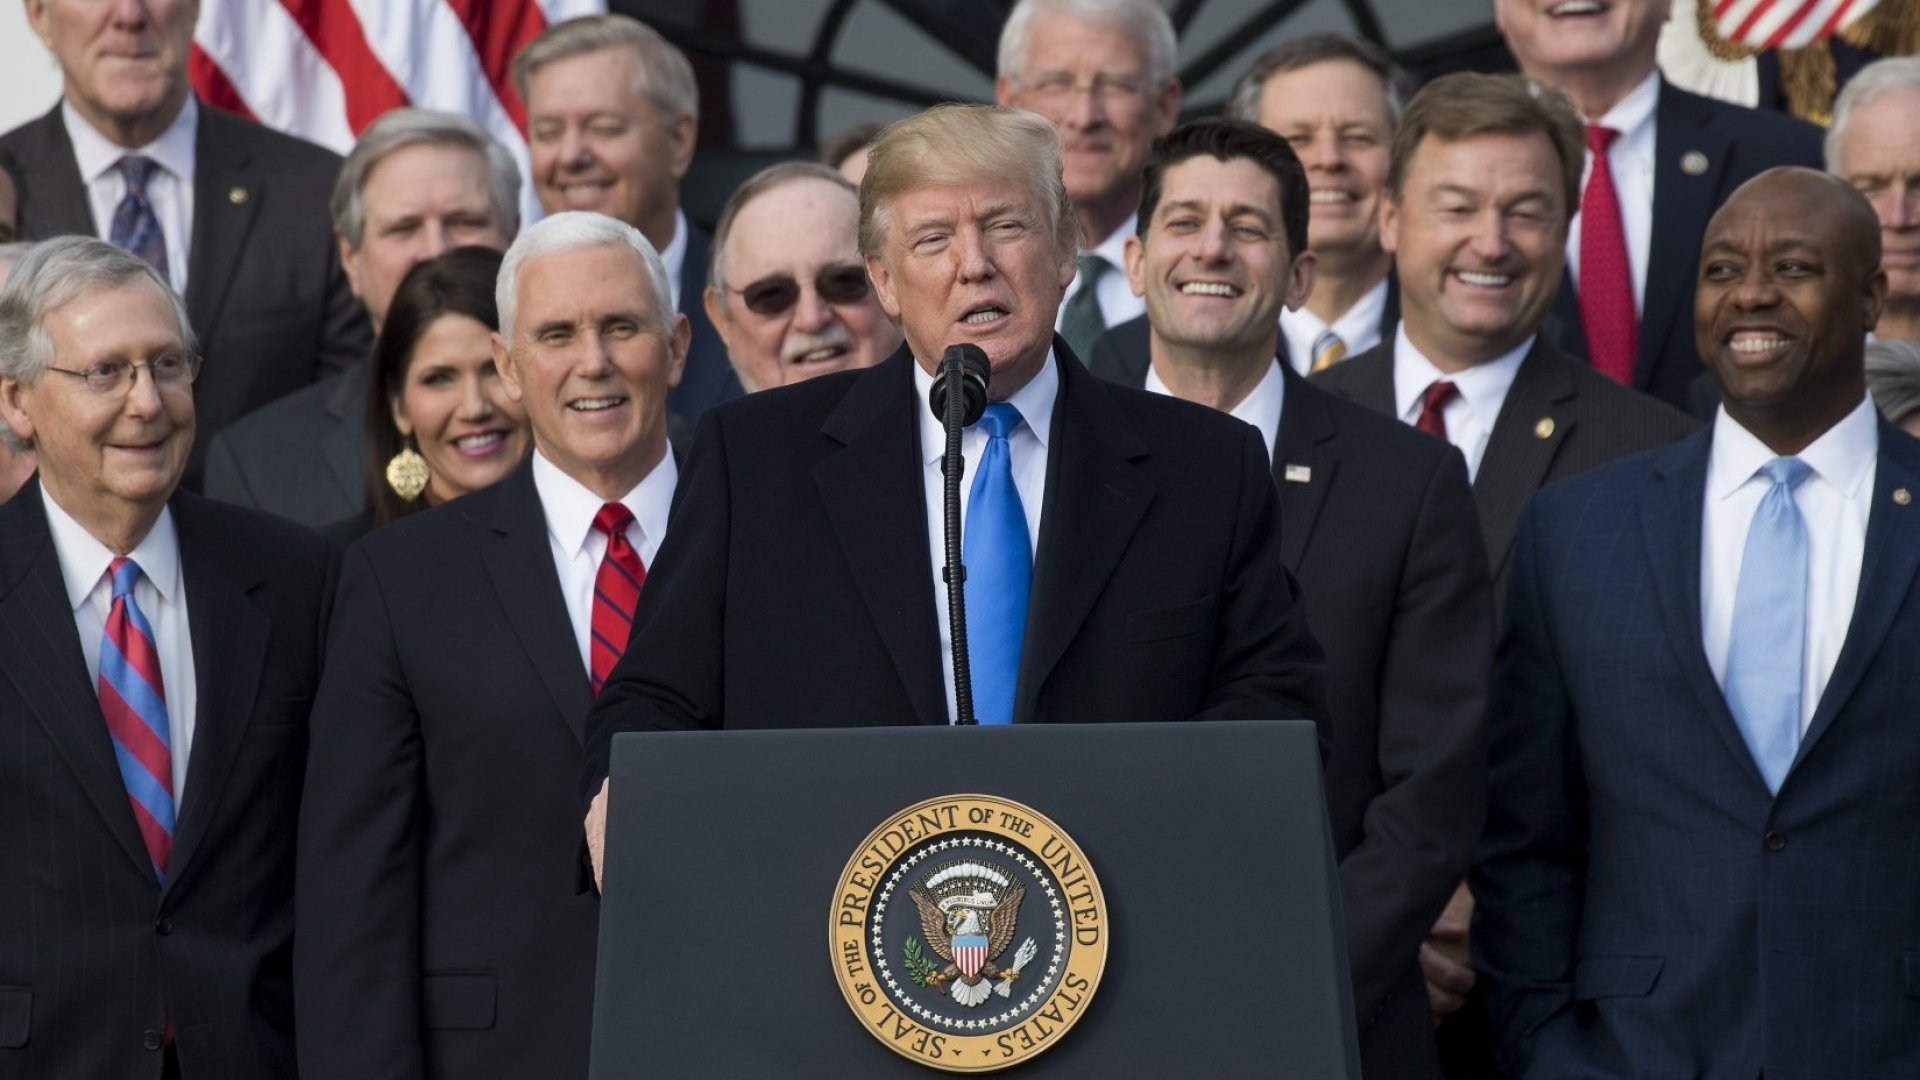 President Donald Trump flanked by Republican lawmakers speaks about the passage of tax reform legislation on the South Lawn of the White House in Washington, DC, December 20, 2017. Trump hailed a 'historic' victory Wednesday as the US Congress passed a massive Republican tax cut plan, handing the president his first major legislative achievement since taking office nearly a year ago.